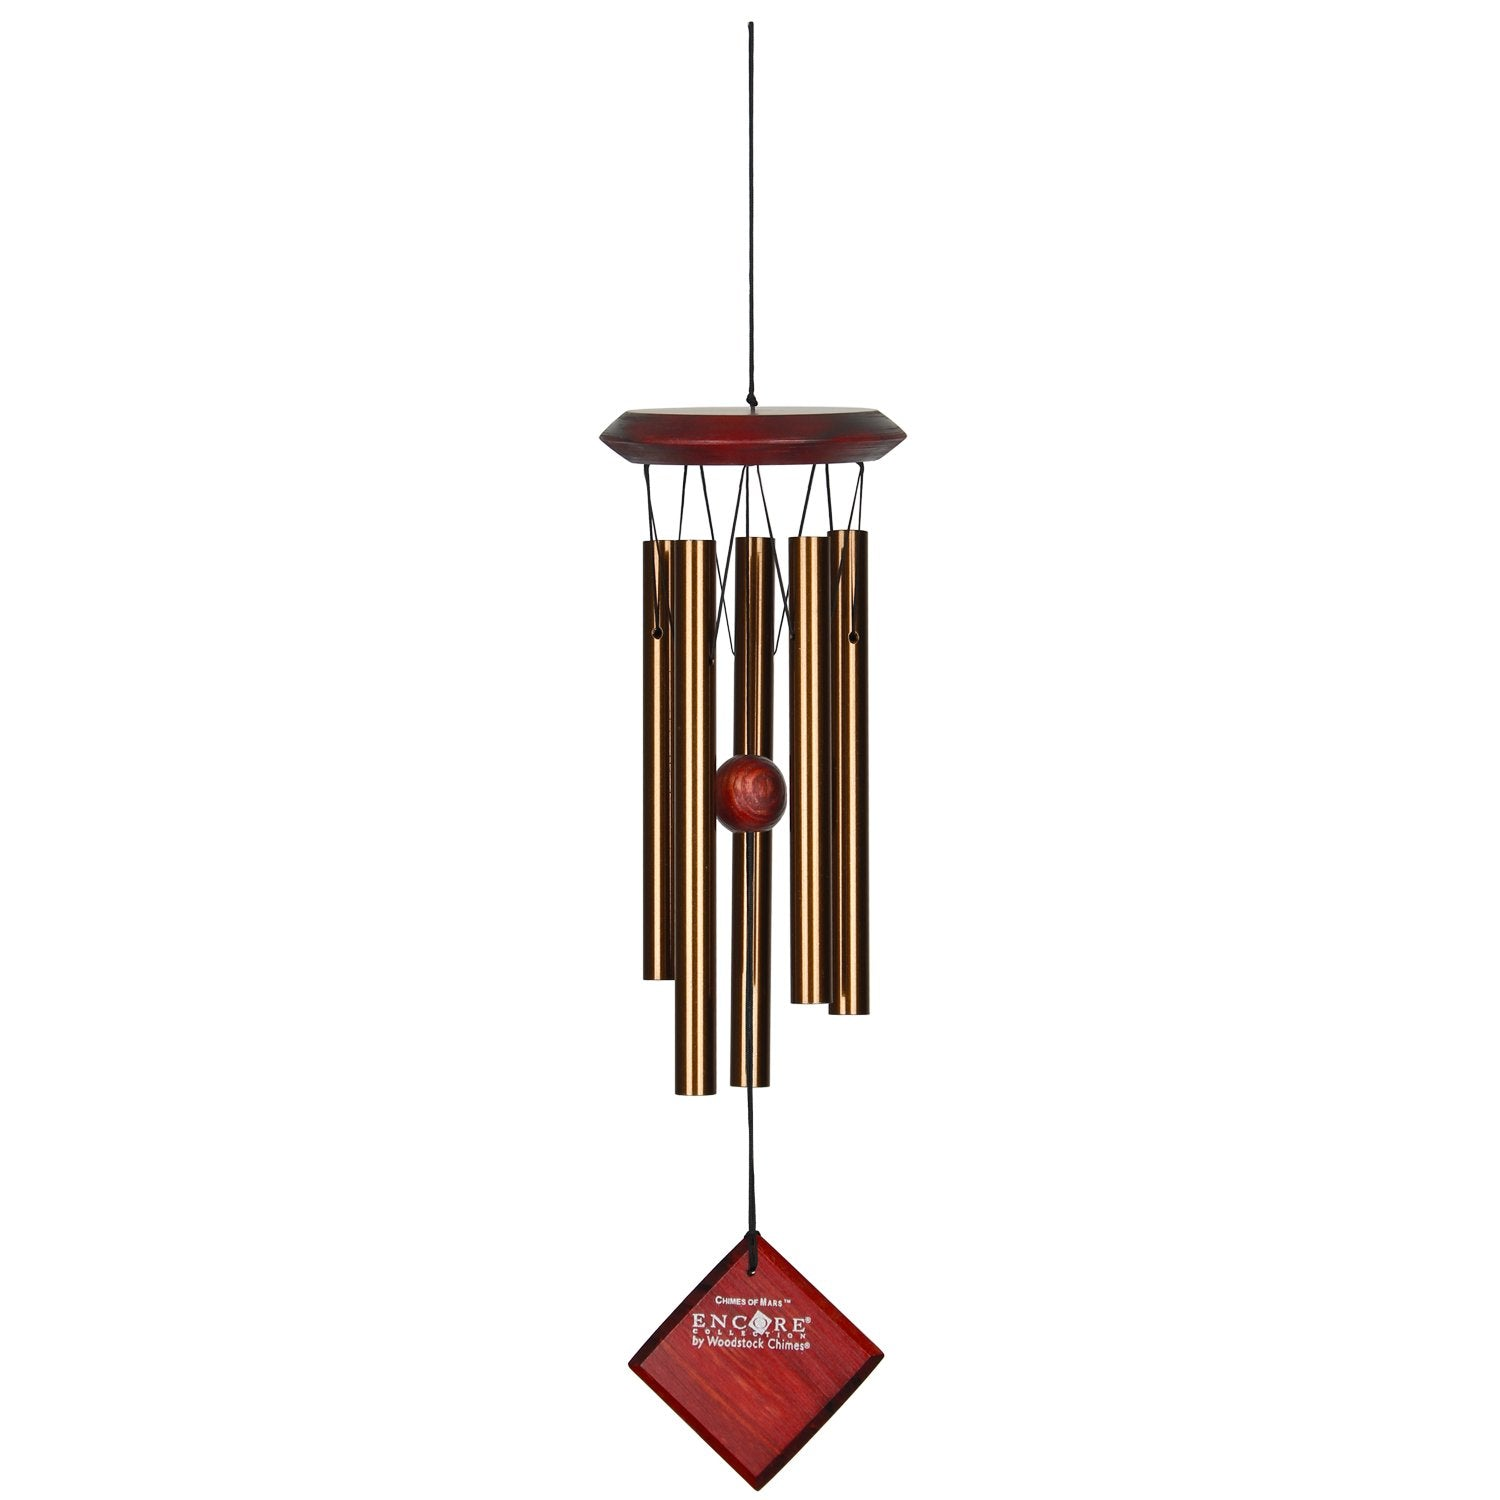 Encore Chimes of Mars - Bronze full product image